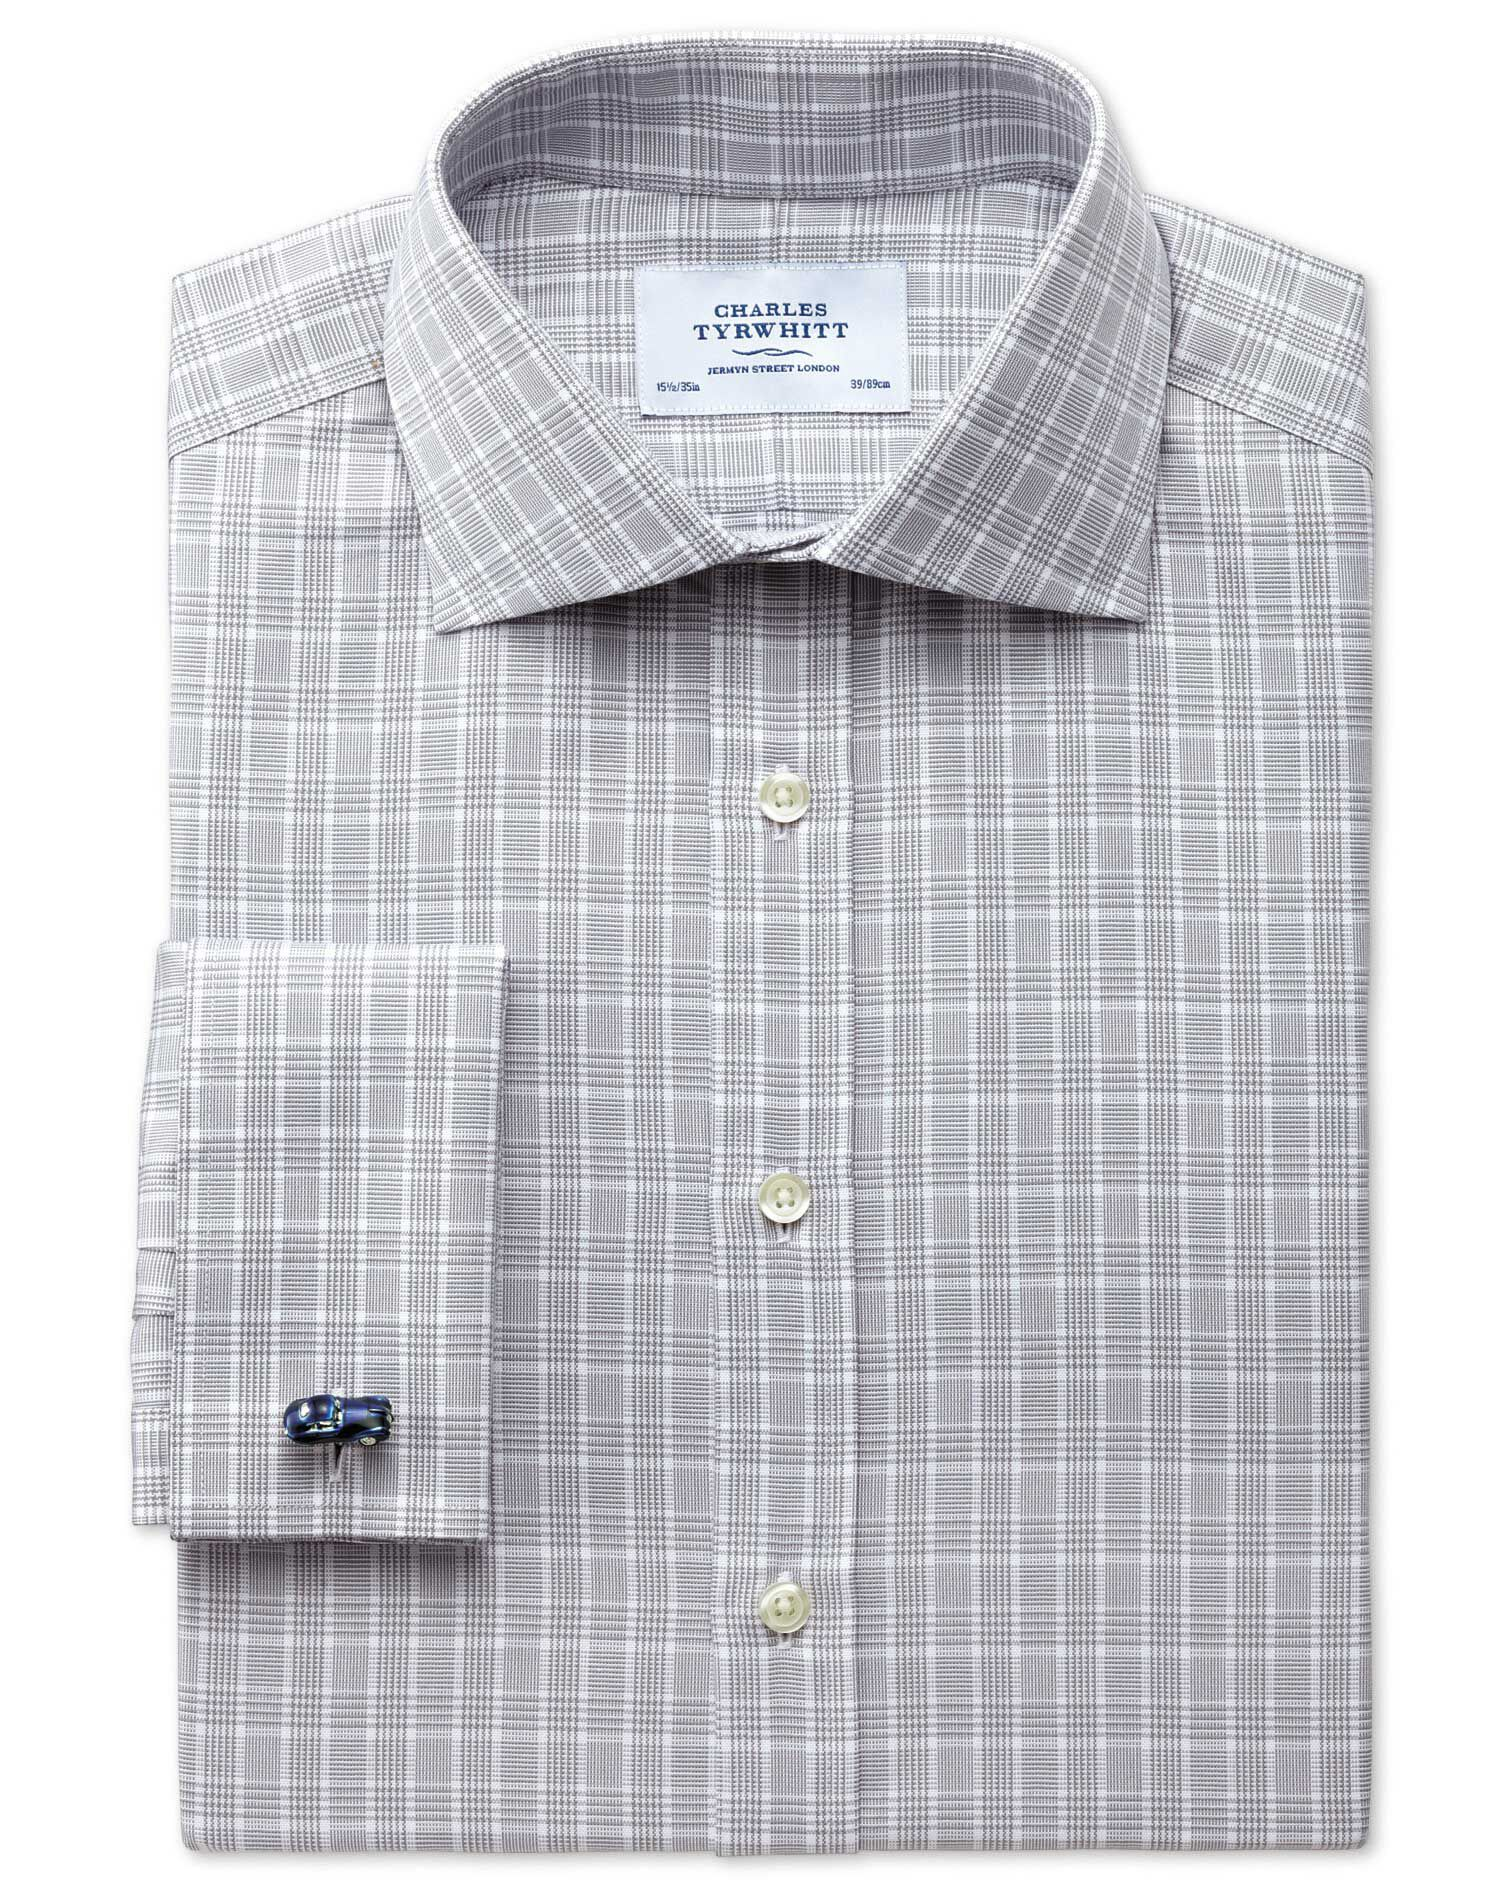 Slim Fit Prince Of Wales Silver Cotton Formal Shirt Double Cuff Size 18/35 by Charles Tyrwhitt